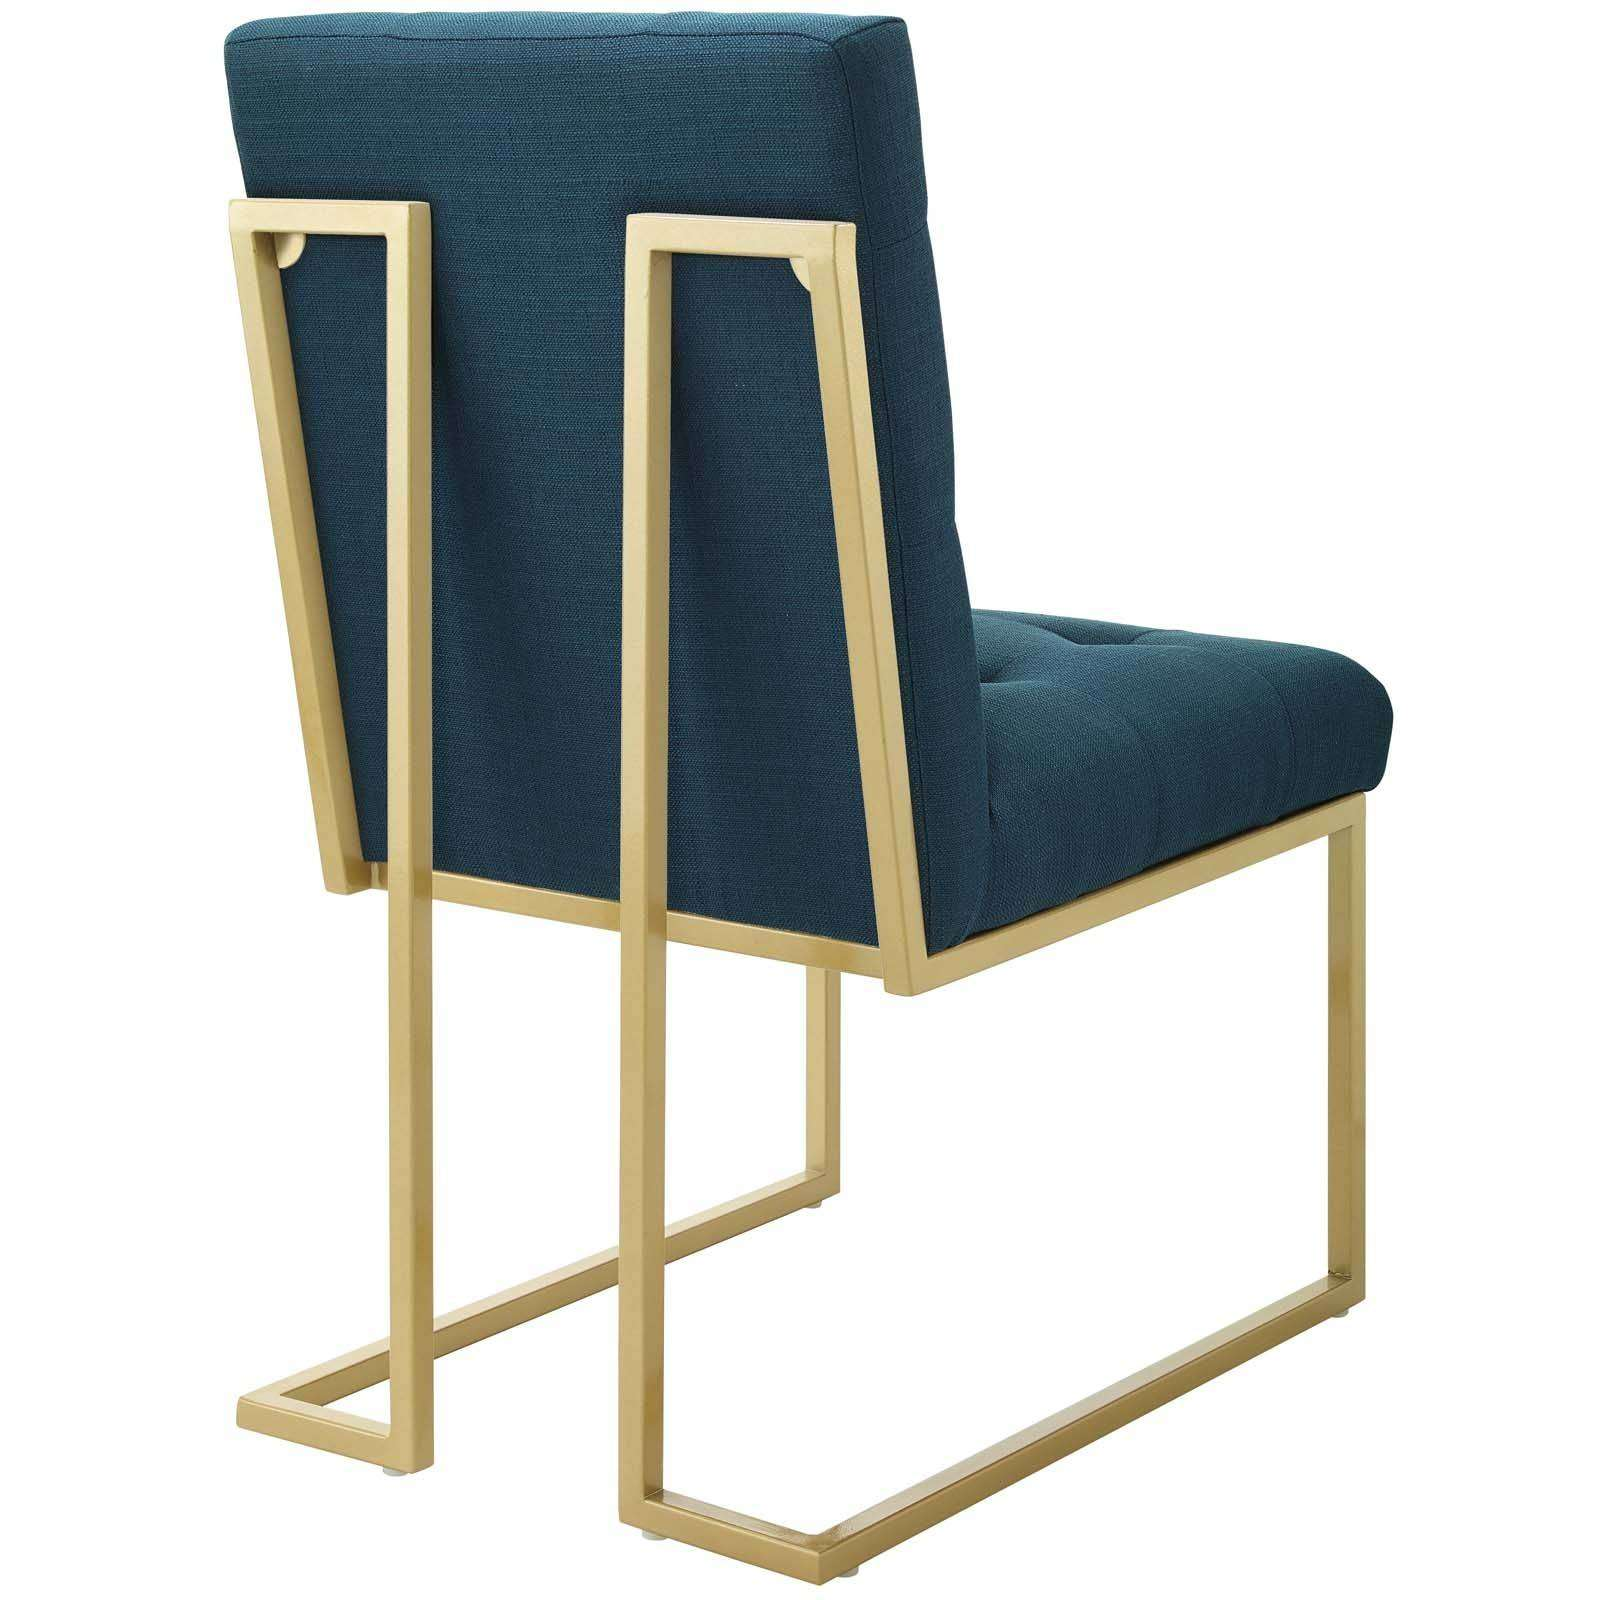 Modterior Dining Room Dining Chairs Privy Gold